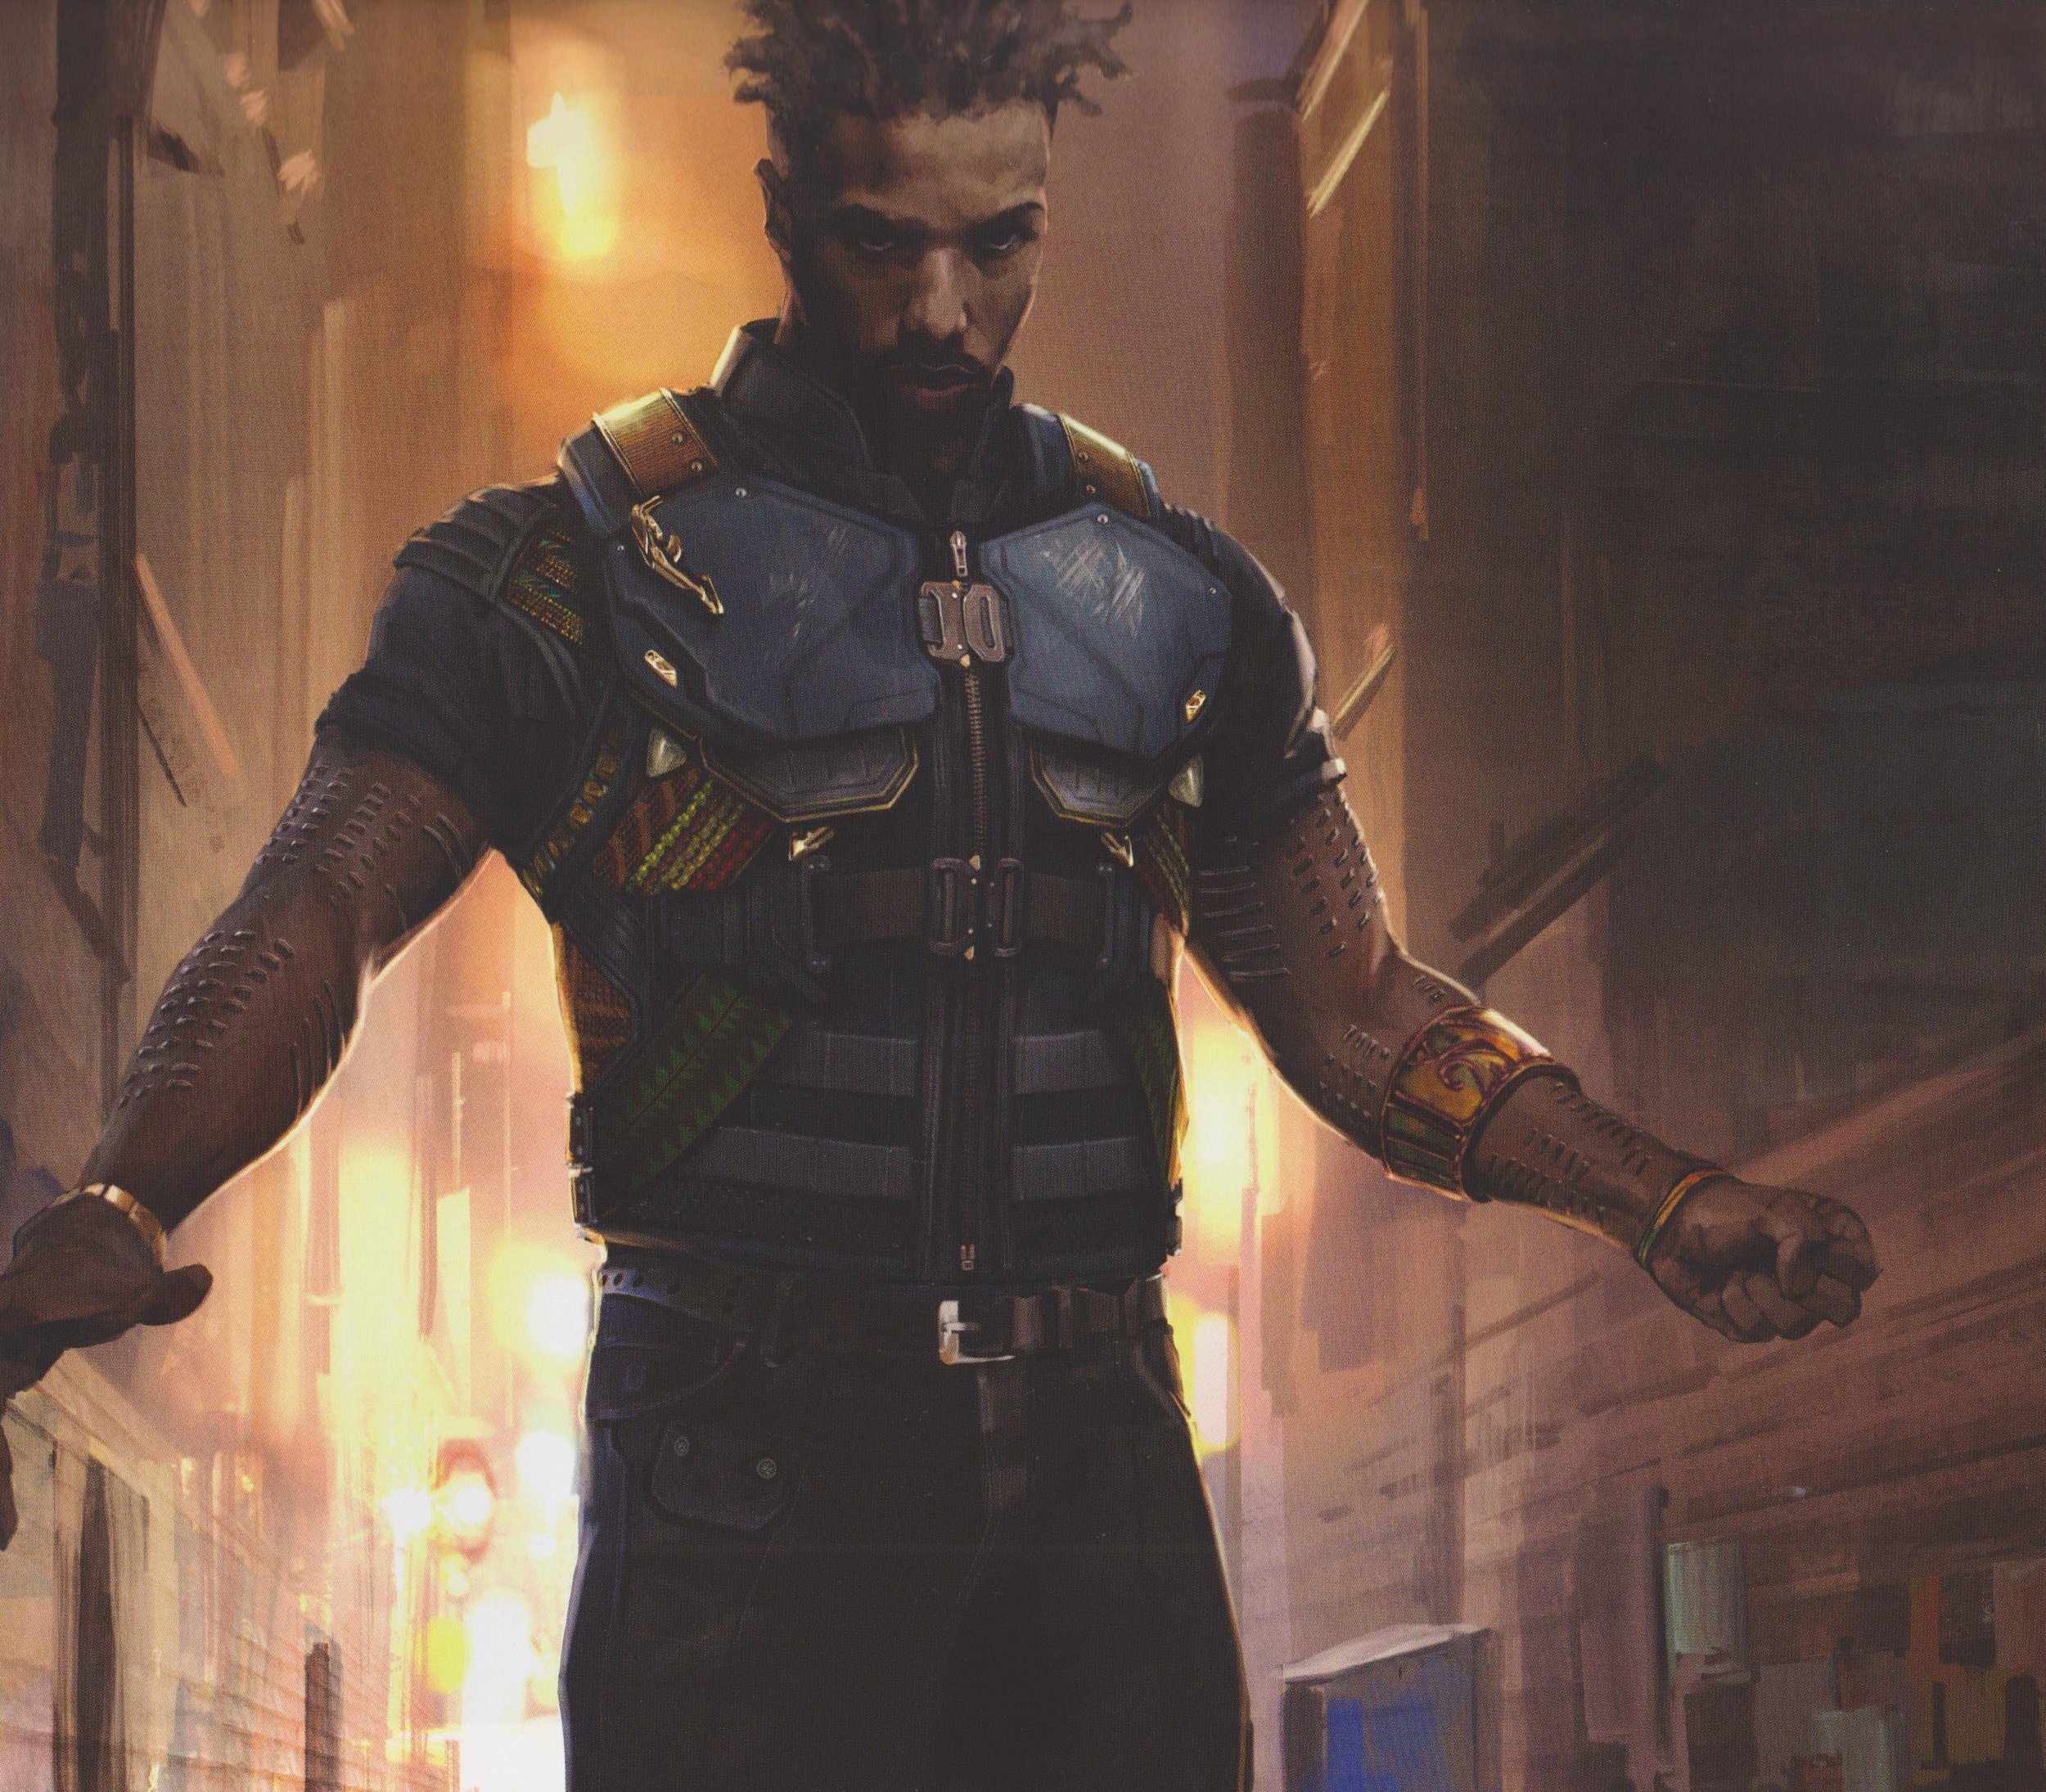 Black Panther Concept Art Shows Early Designs For Killmonger